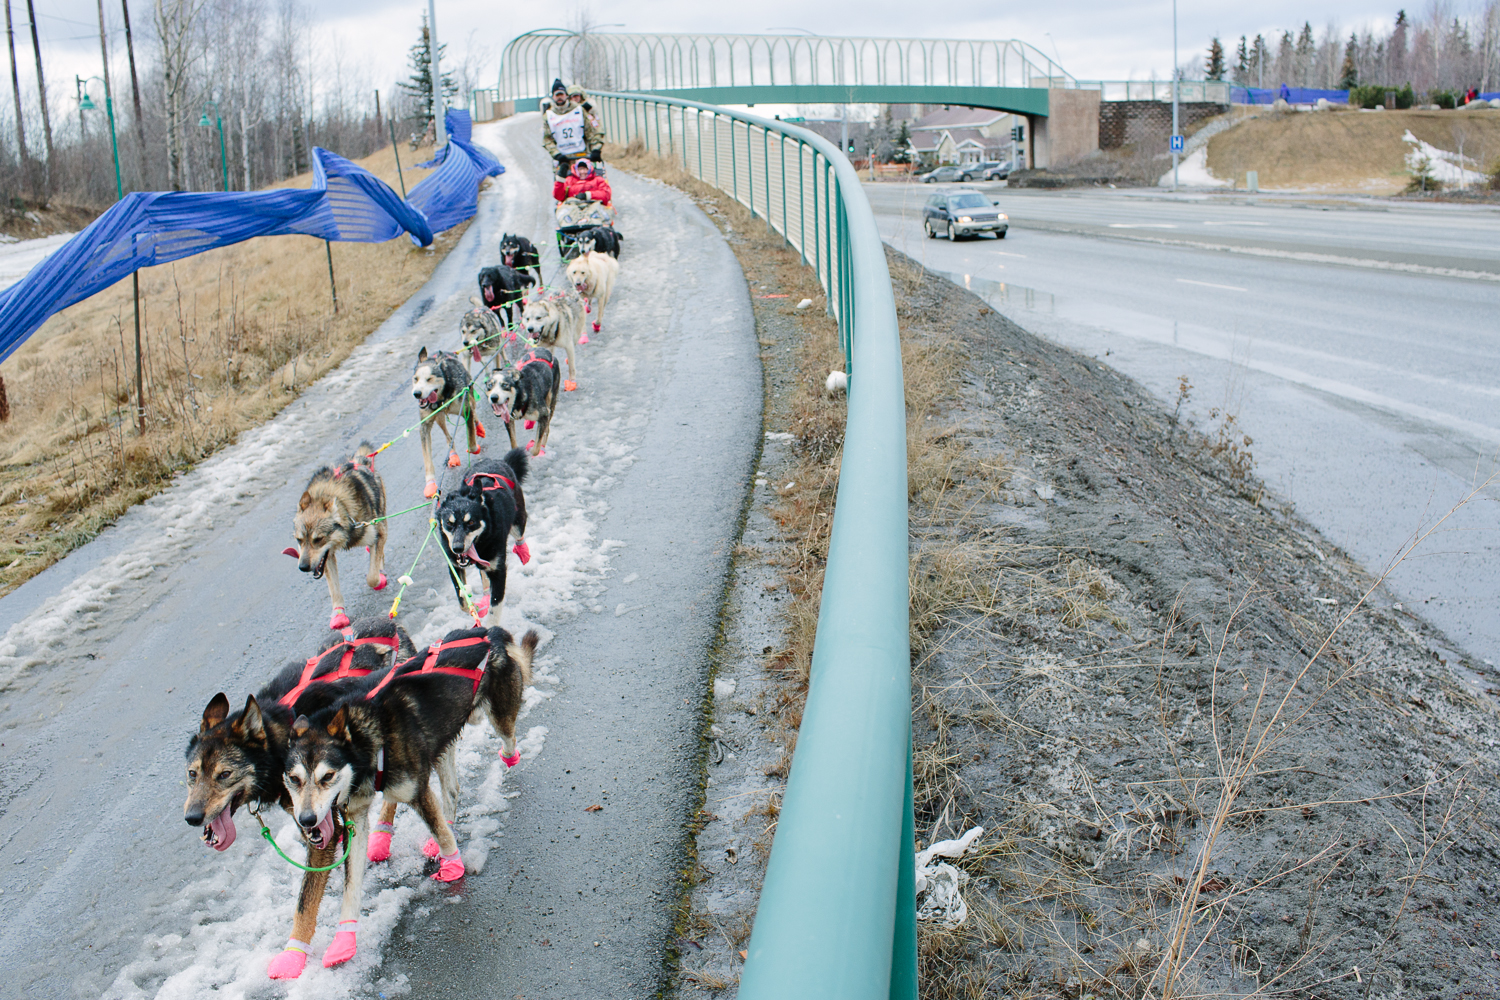 Bib 52, musher Rick Casillo and his dog team mushed over minimal snow next to Tudor Road in Anchorage Alaska during the Ceremonial Start of the 2015 Iditarod.